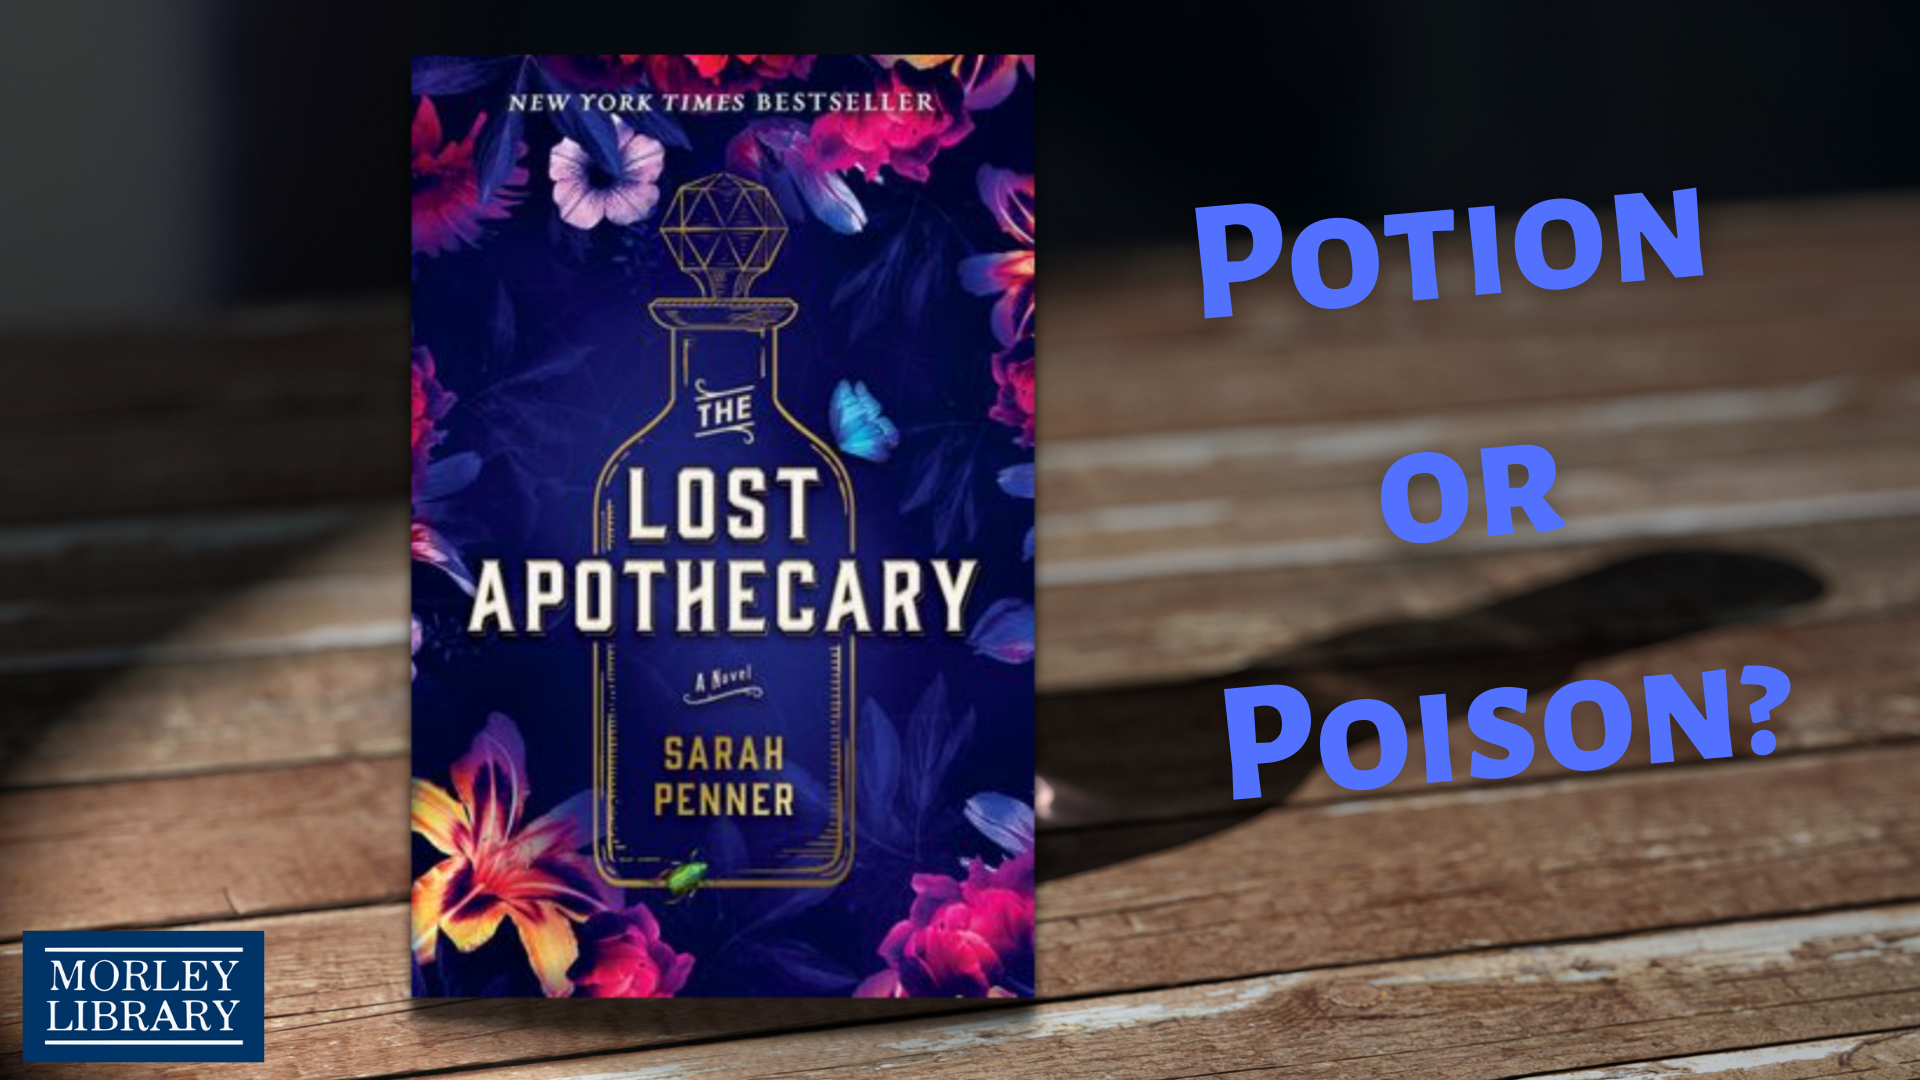 Potion or Poison? The Lost Apothecary Booktalk Trailer